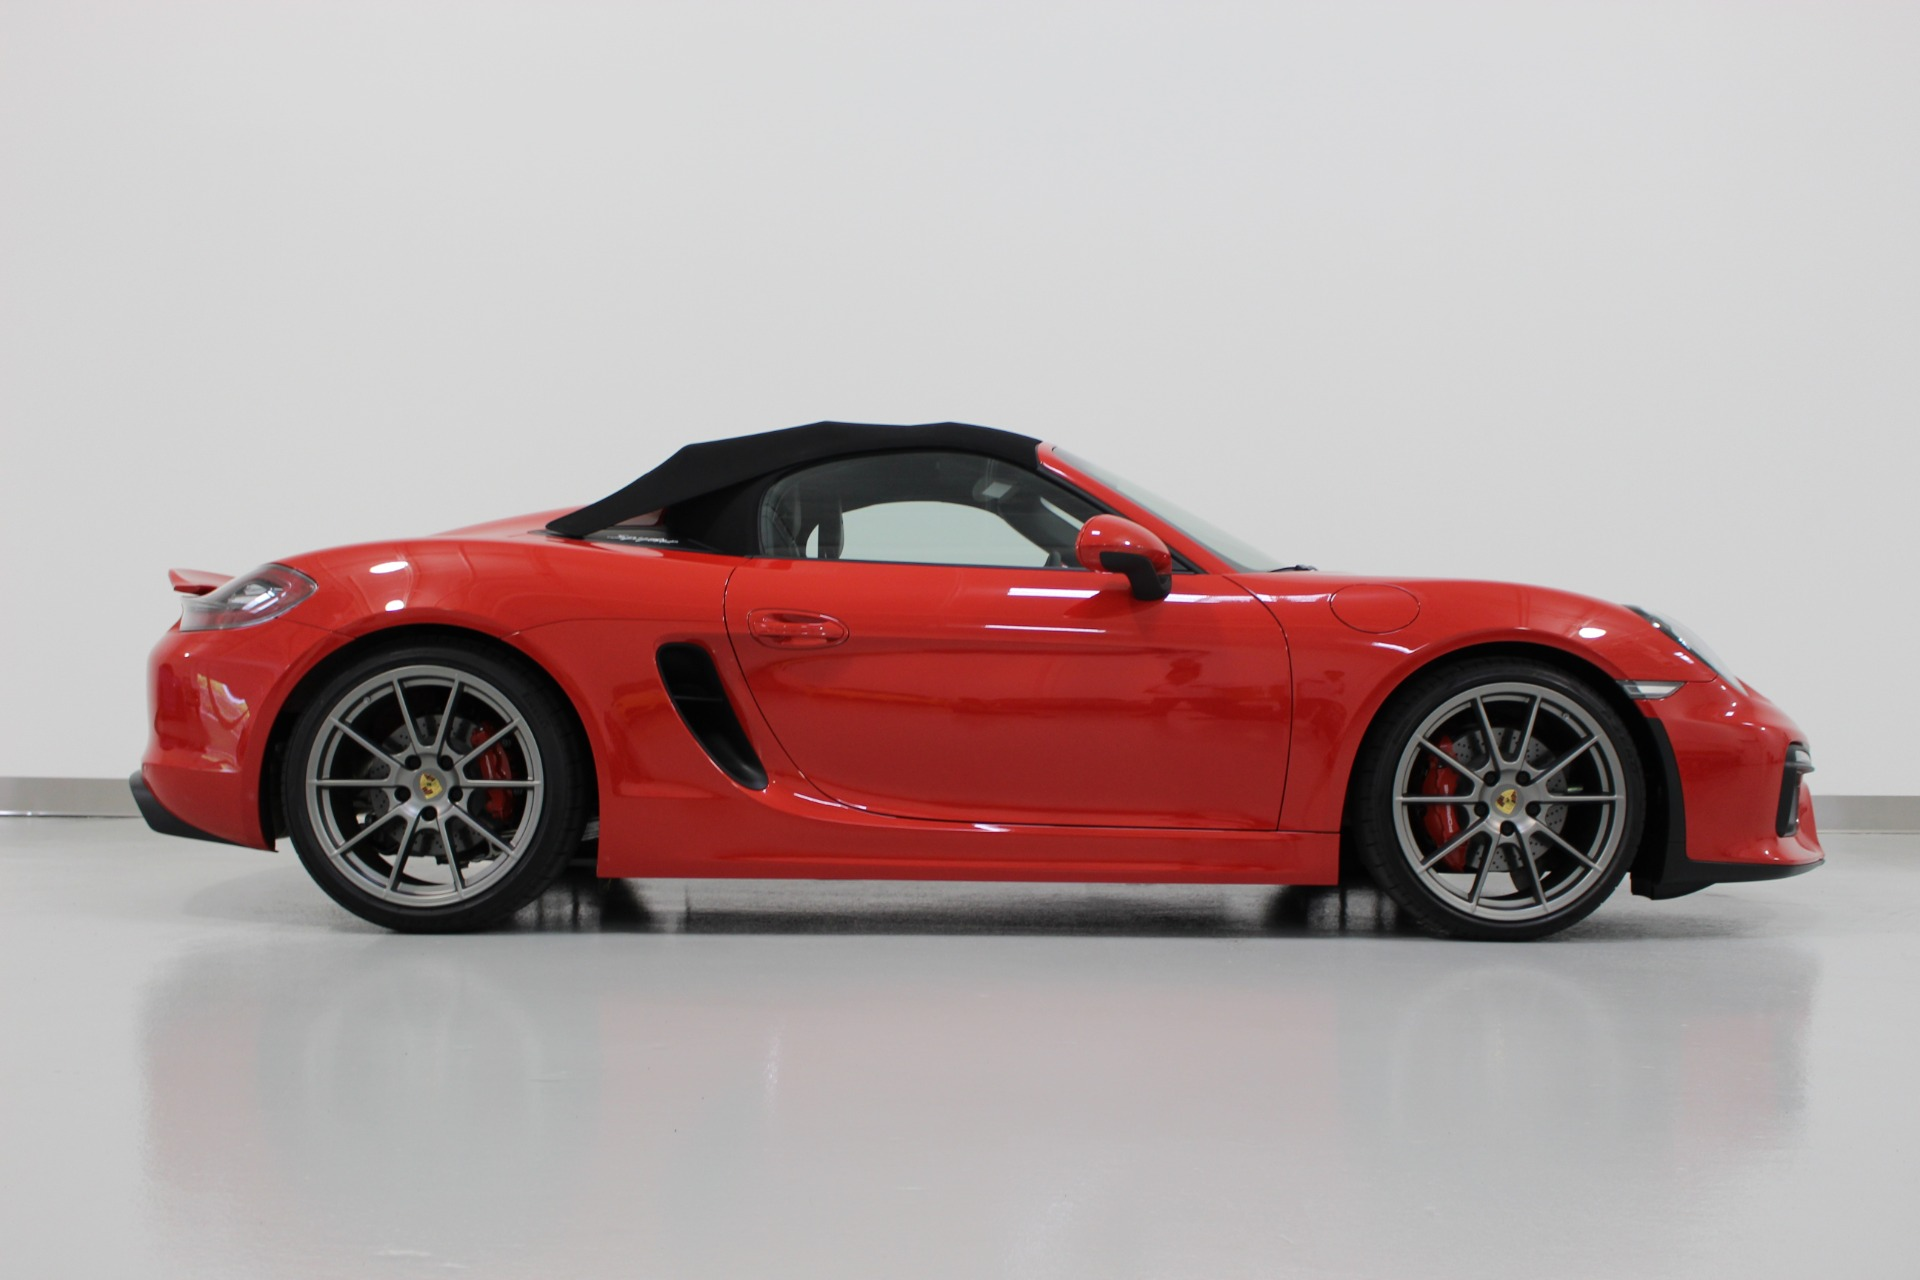 2016 porsche boxster spyder for sale in miami fl 152878 all sports motor network. Black Bedroom Furniture Sets. Home Design Ideas